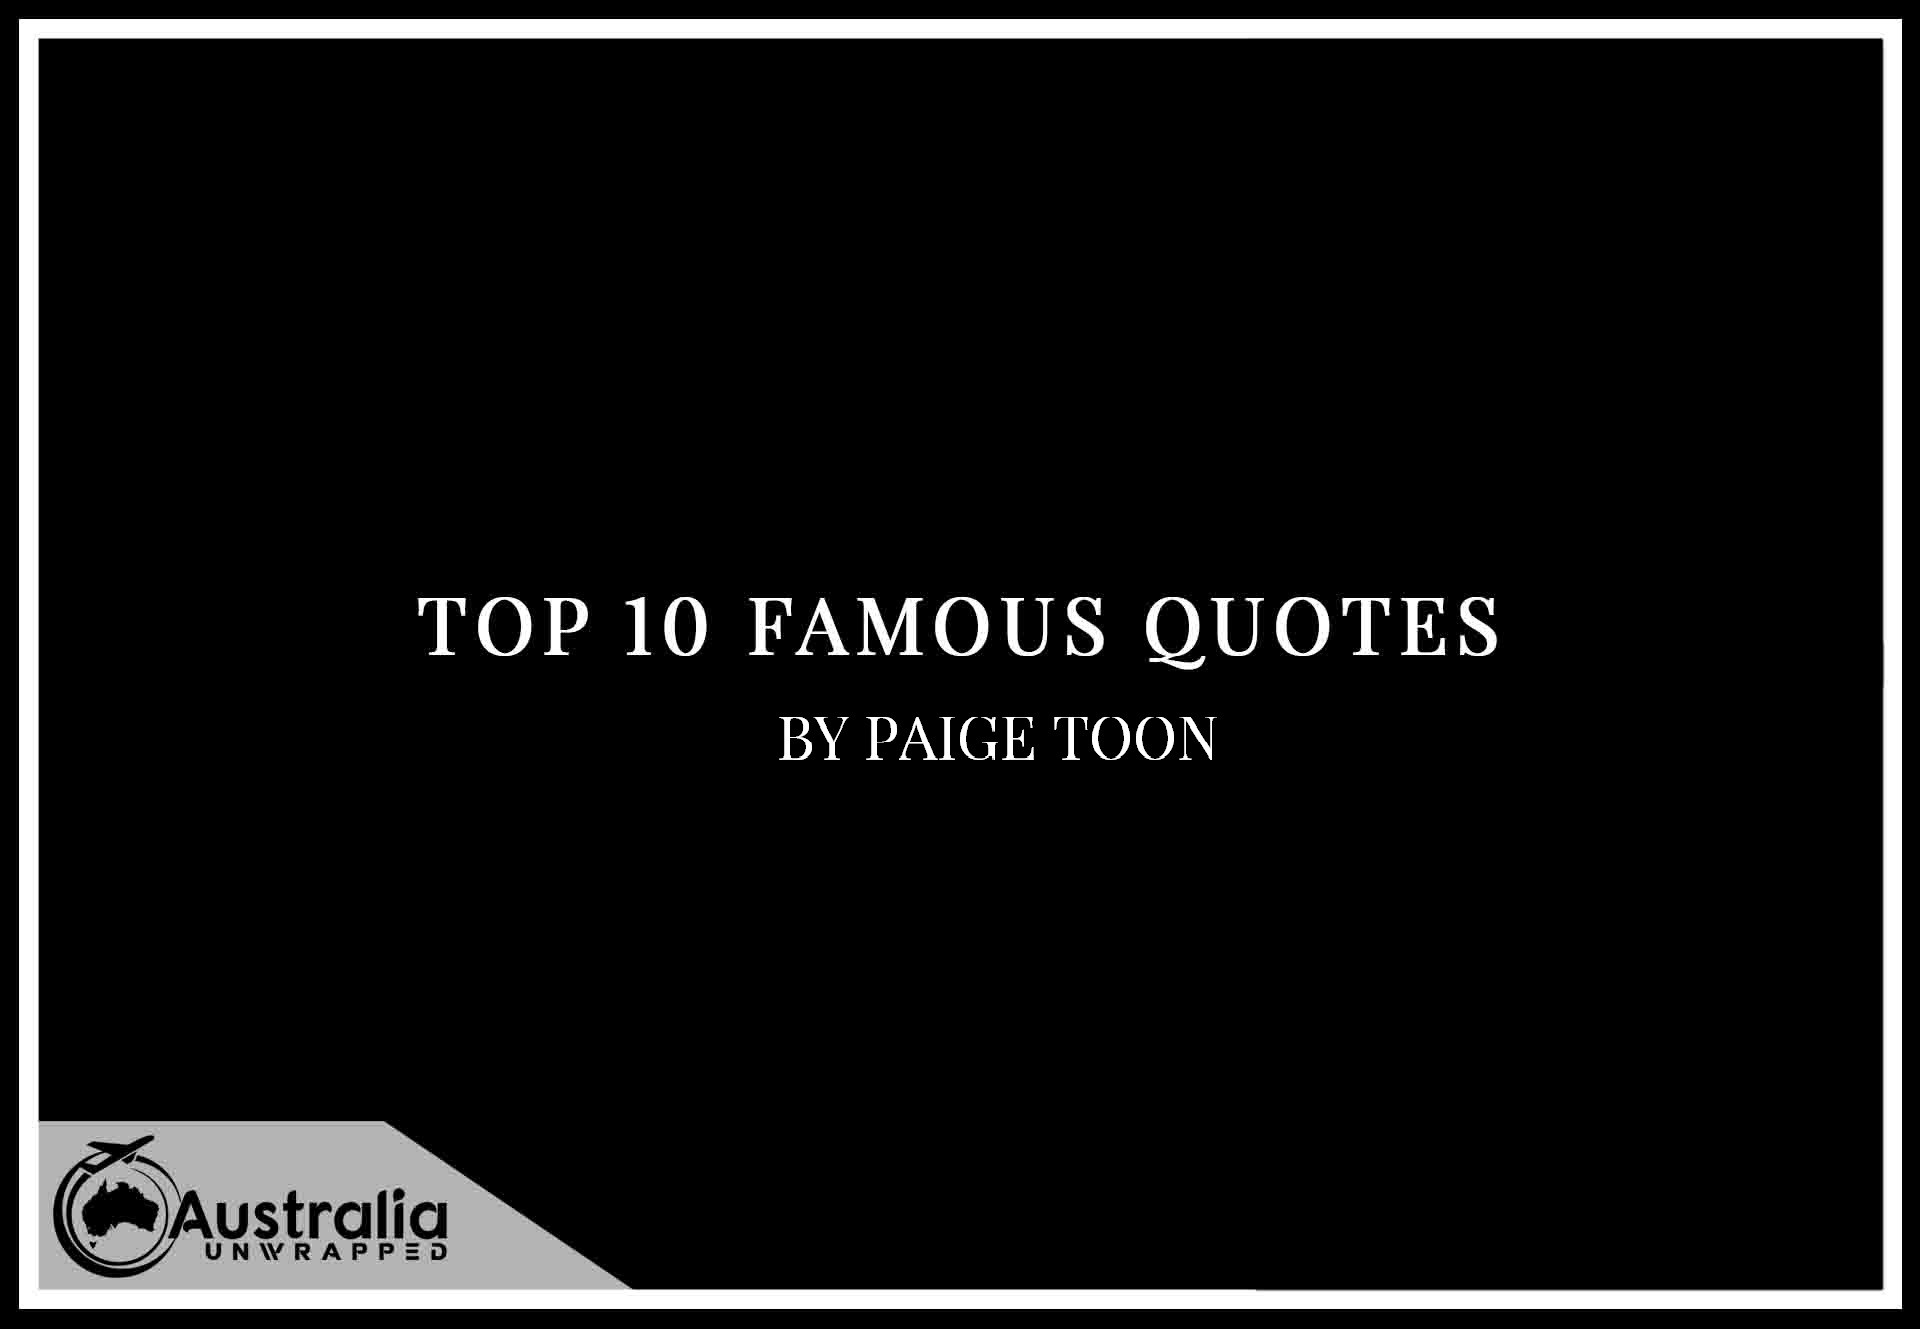 Top 10 Famous Quotes by Author Paige Toon